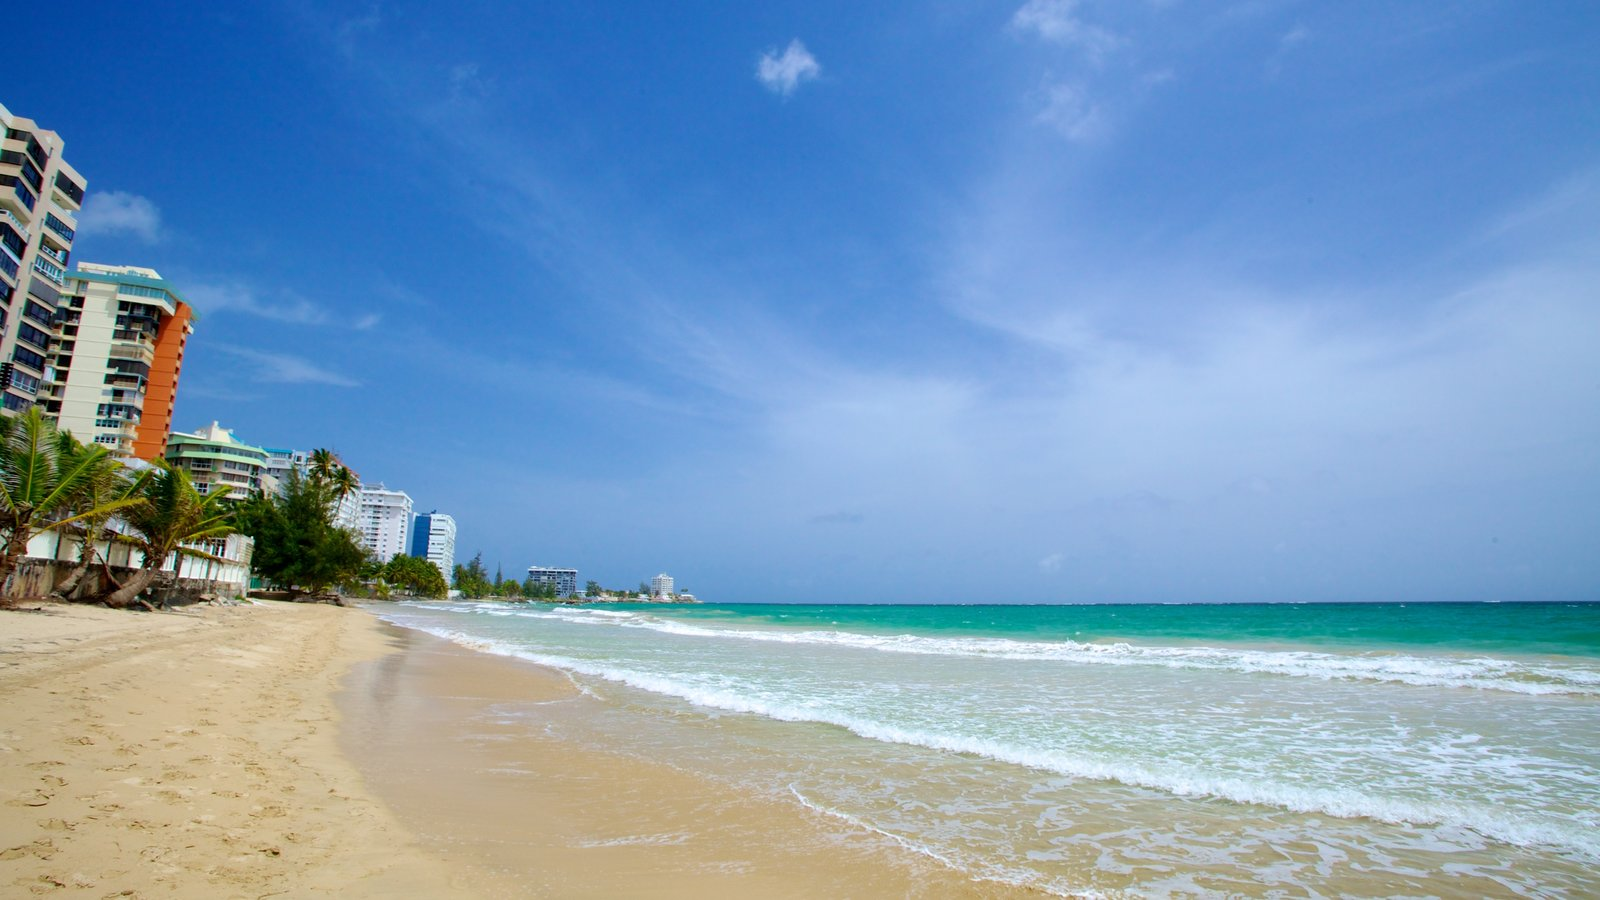 Isla Verde Beach showing a beach and a coastal town